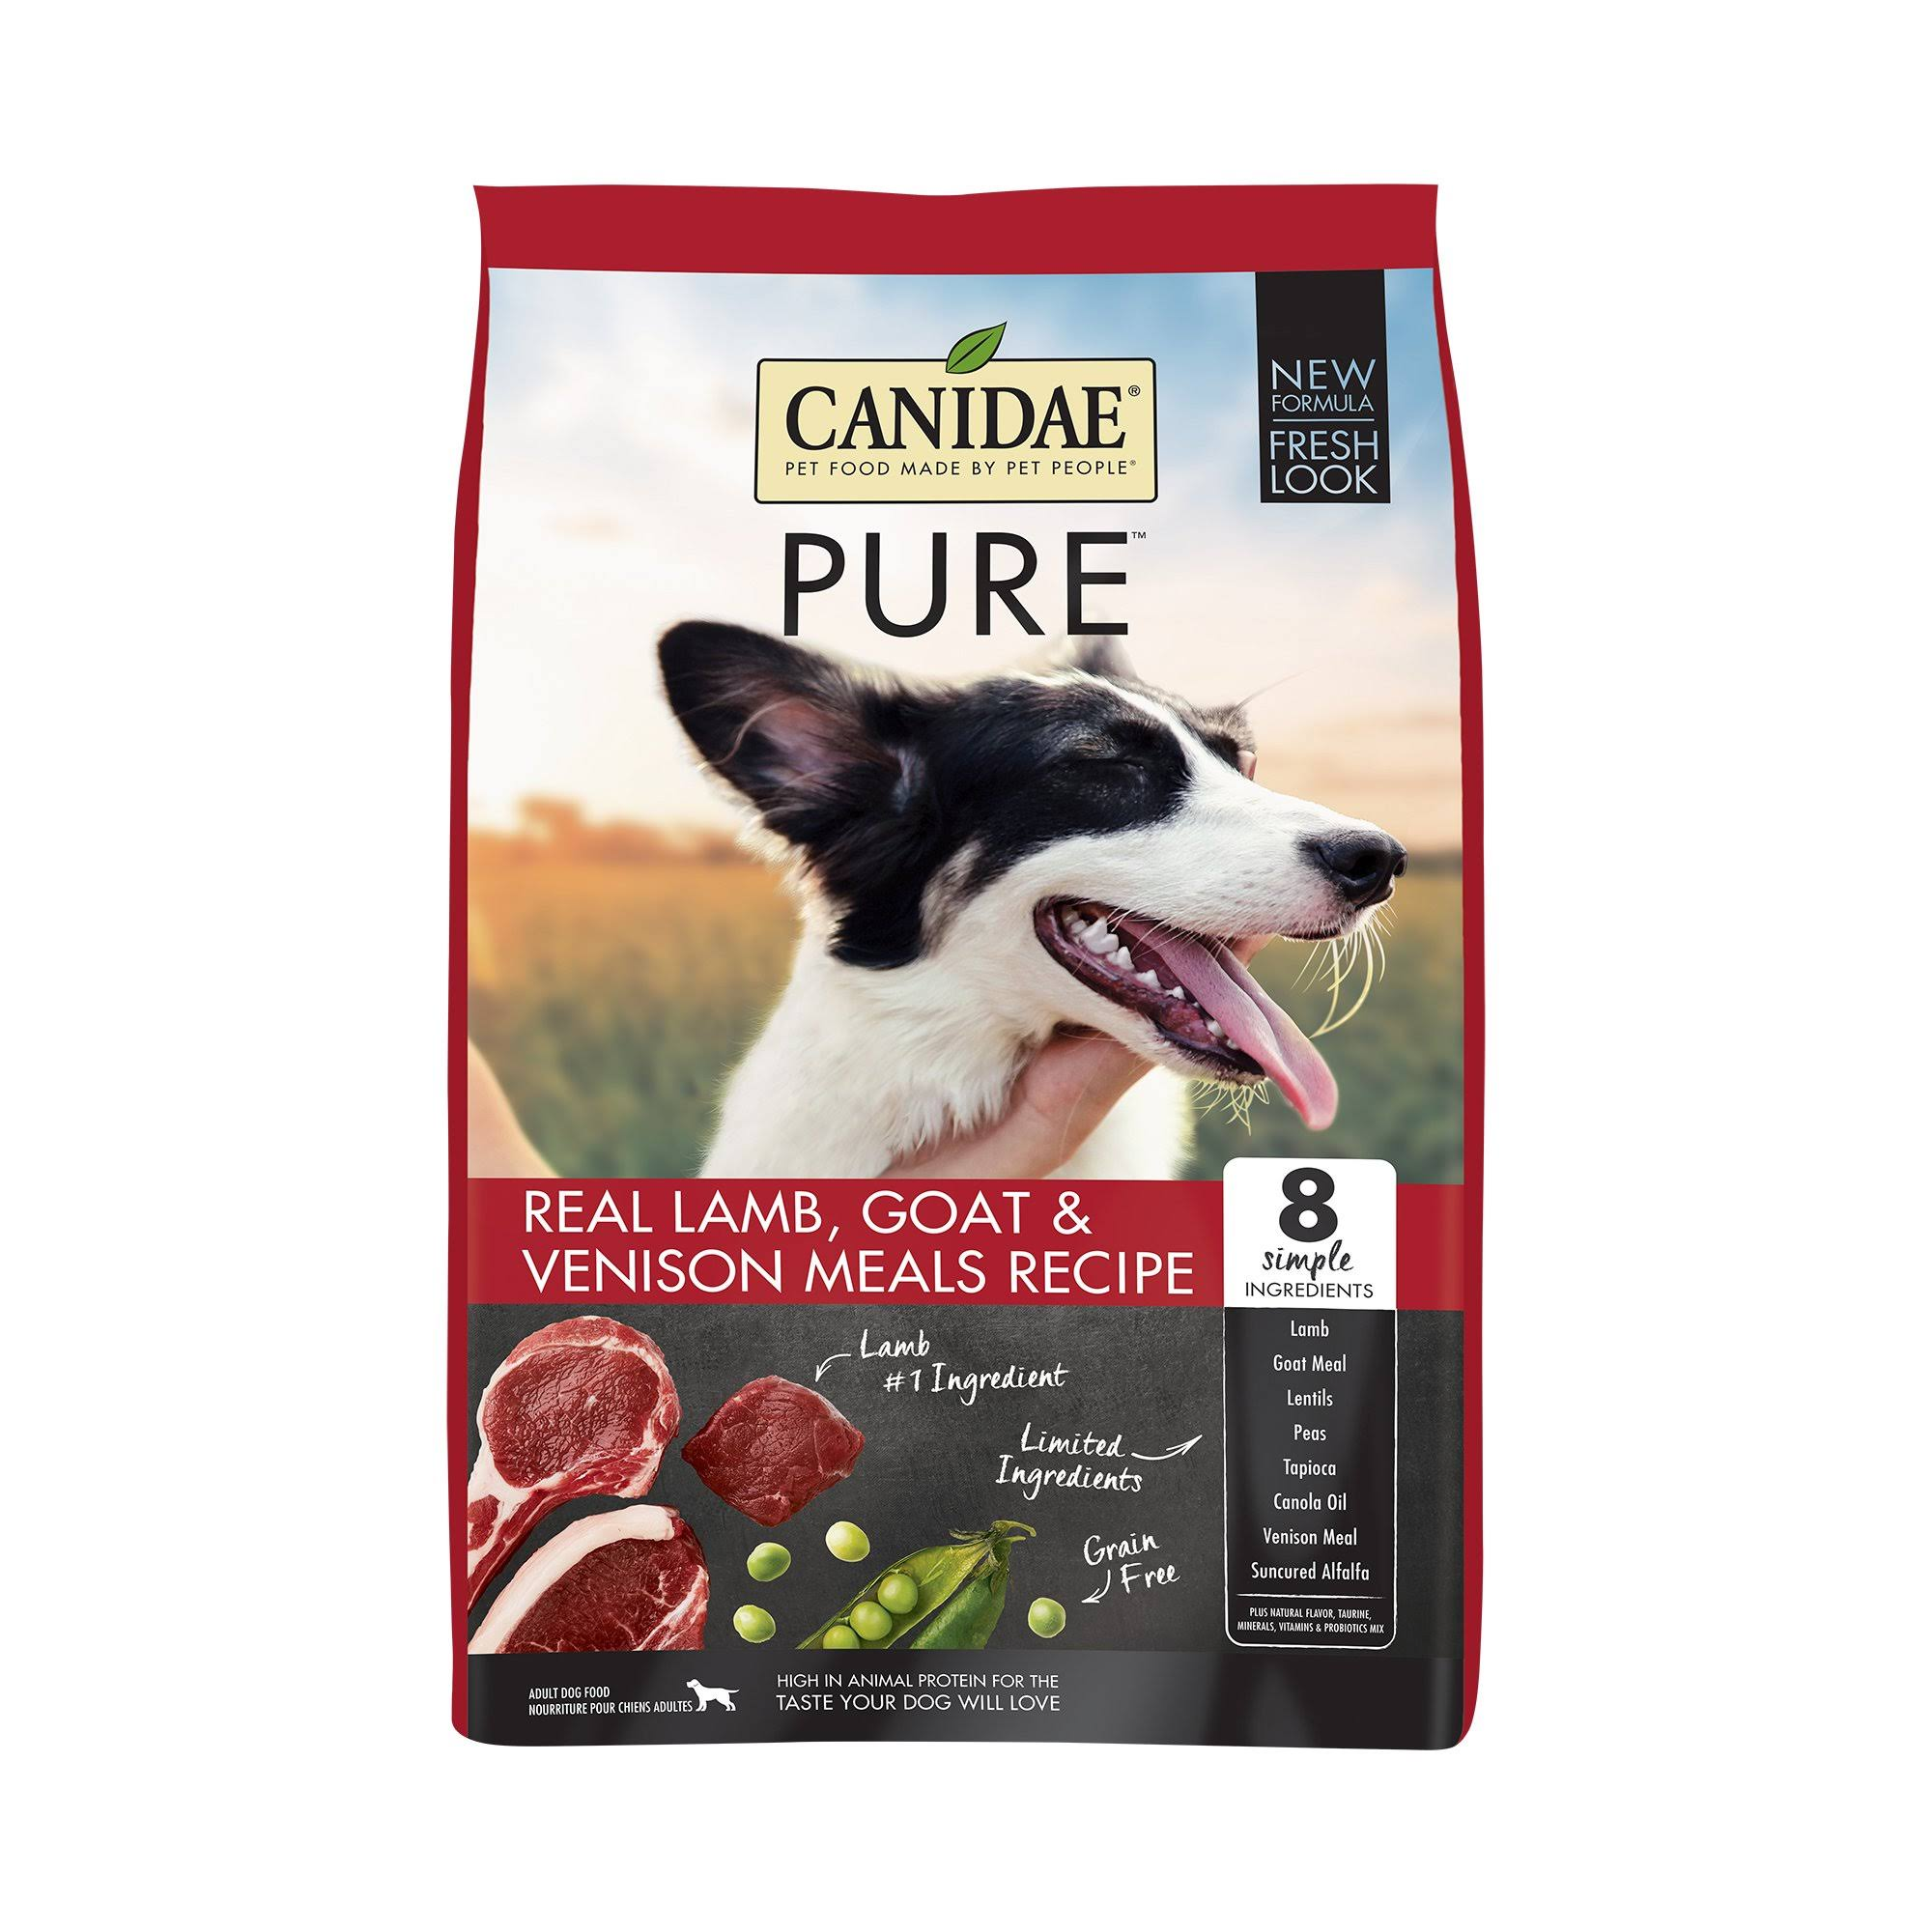 Canidae - Pure Range Red Meat Formula Dry Dog Food - 24lb